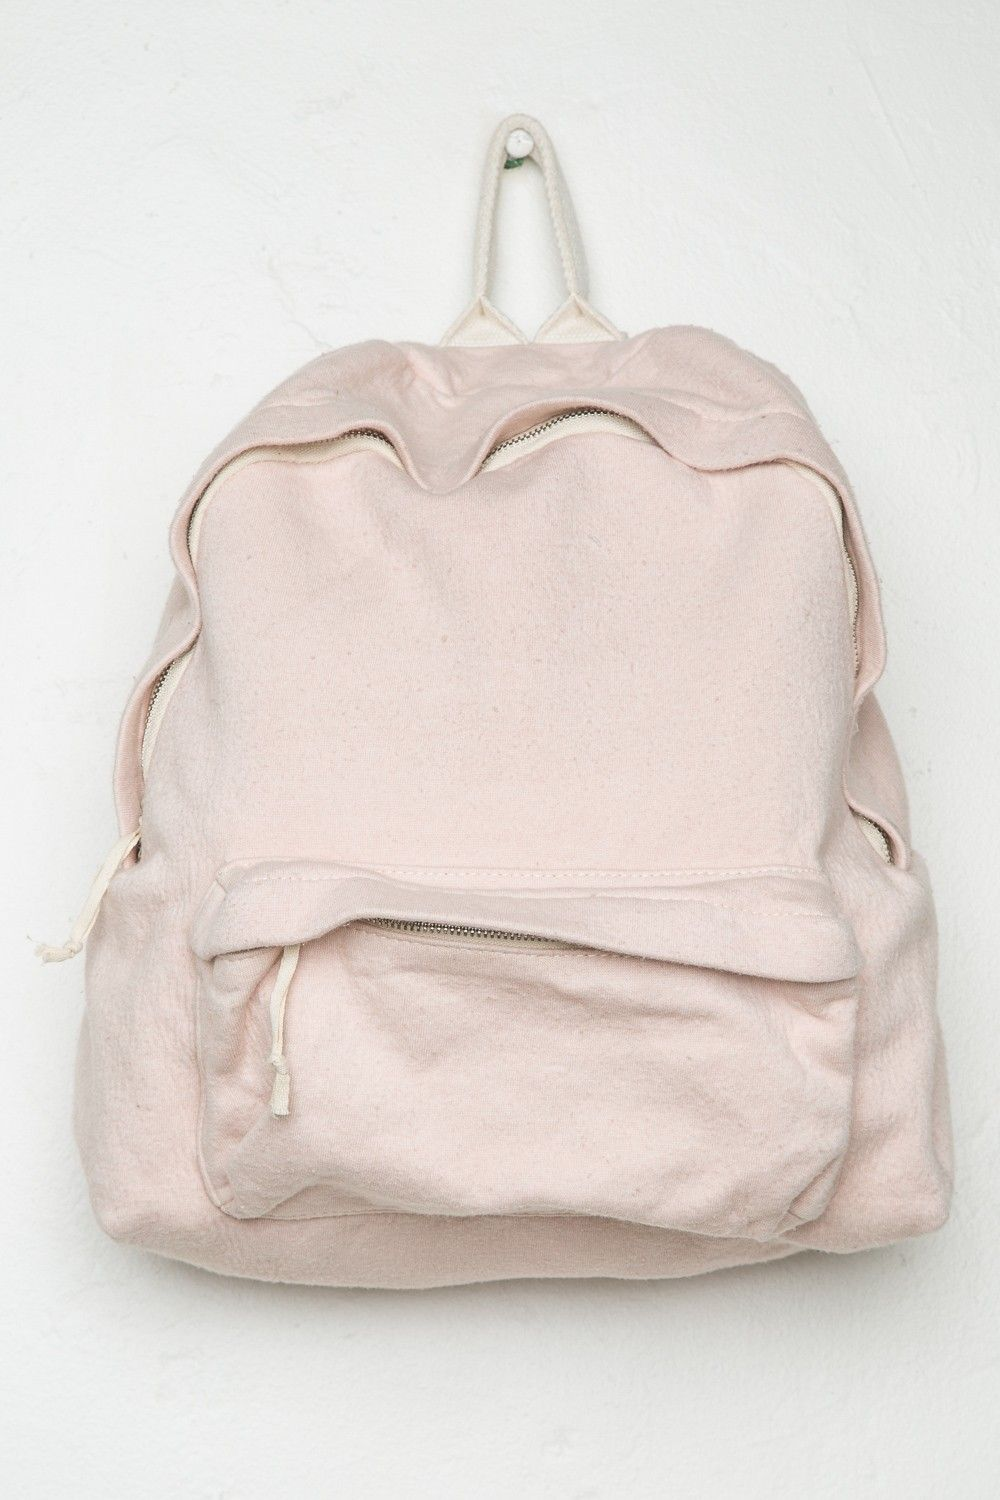 d9a52cf3f5 Brandy ♥ Melville | John Galt Backpack - Accessories | Brandy ...